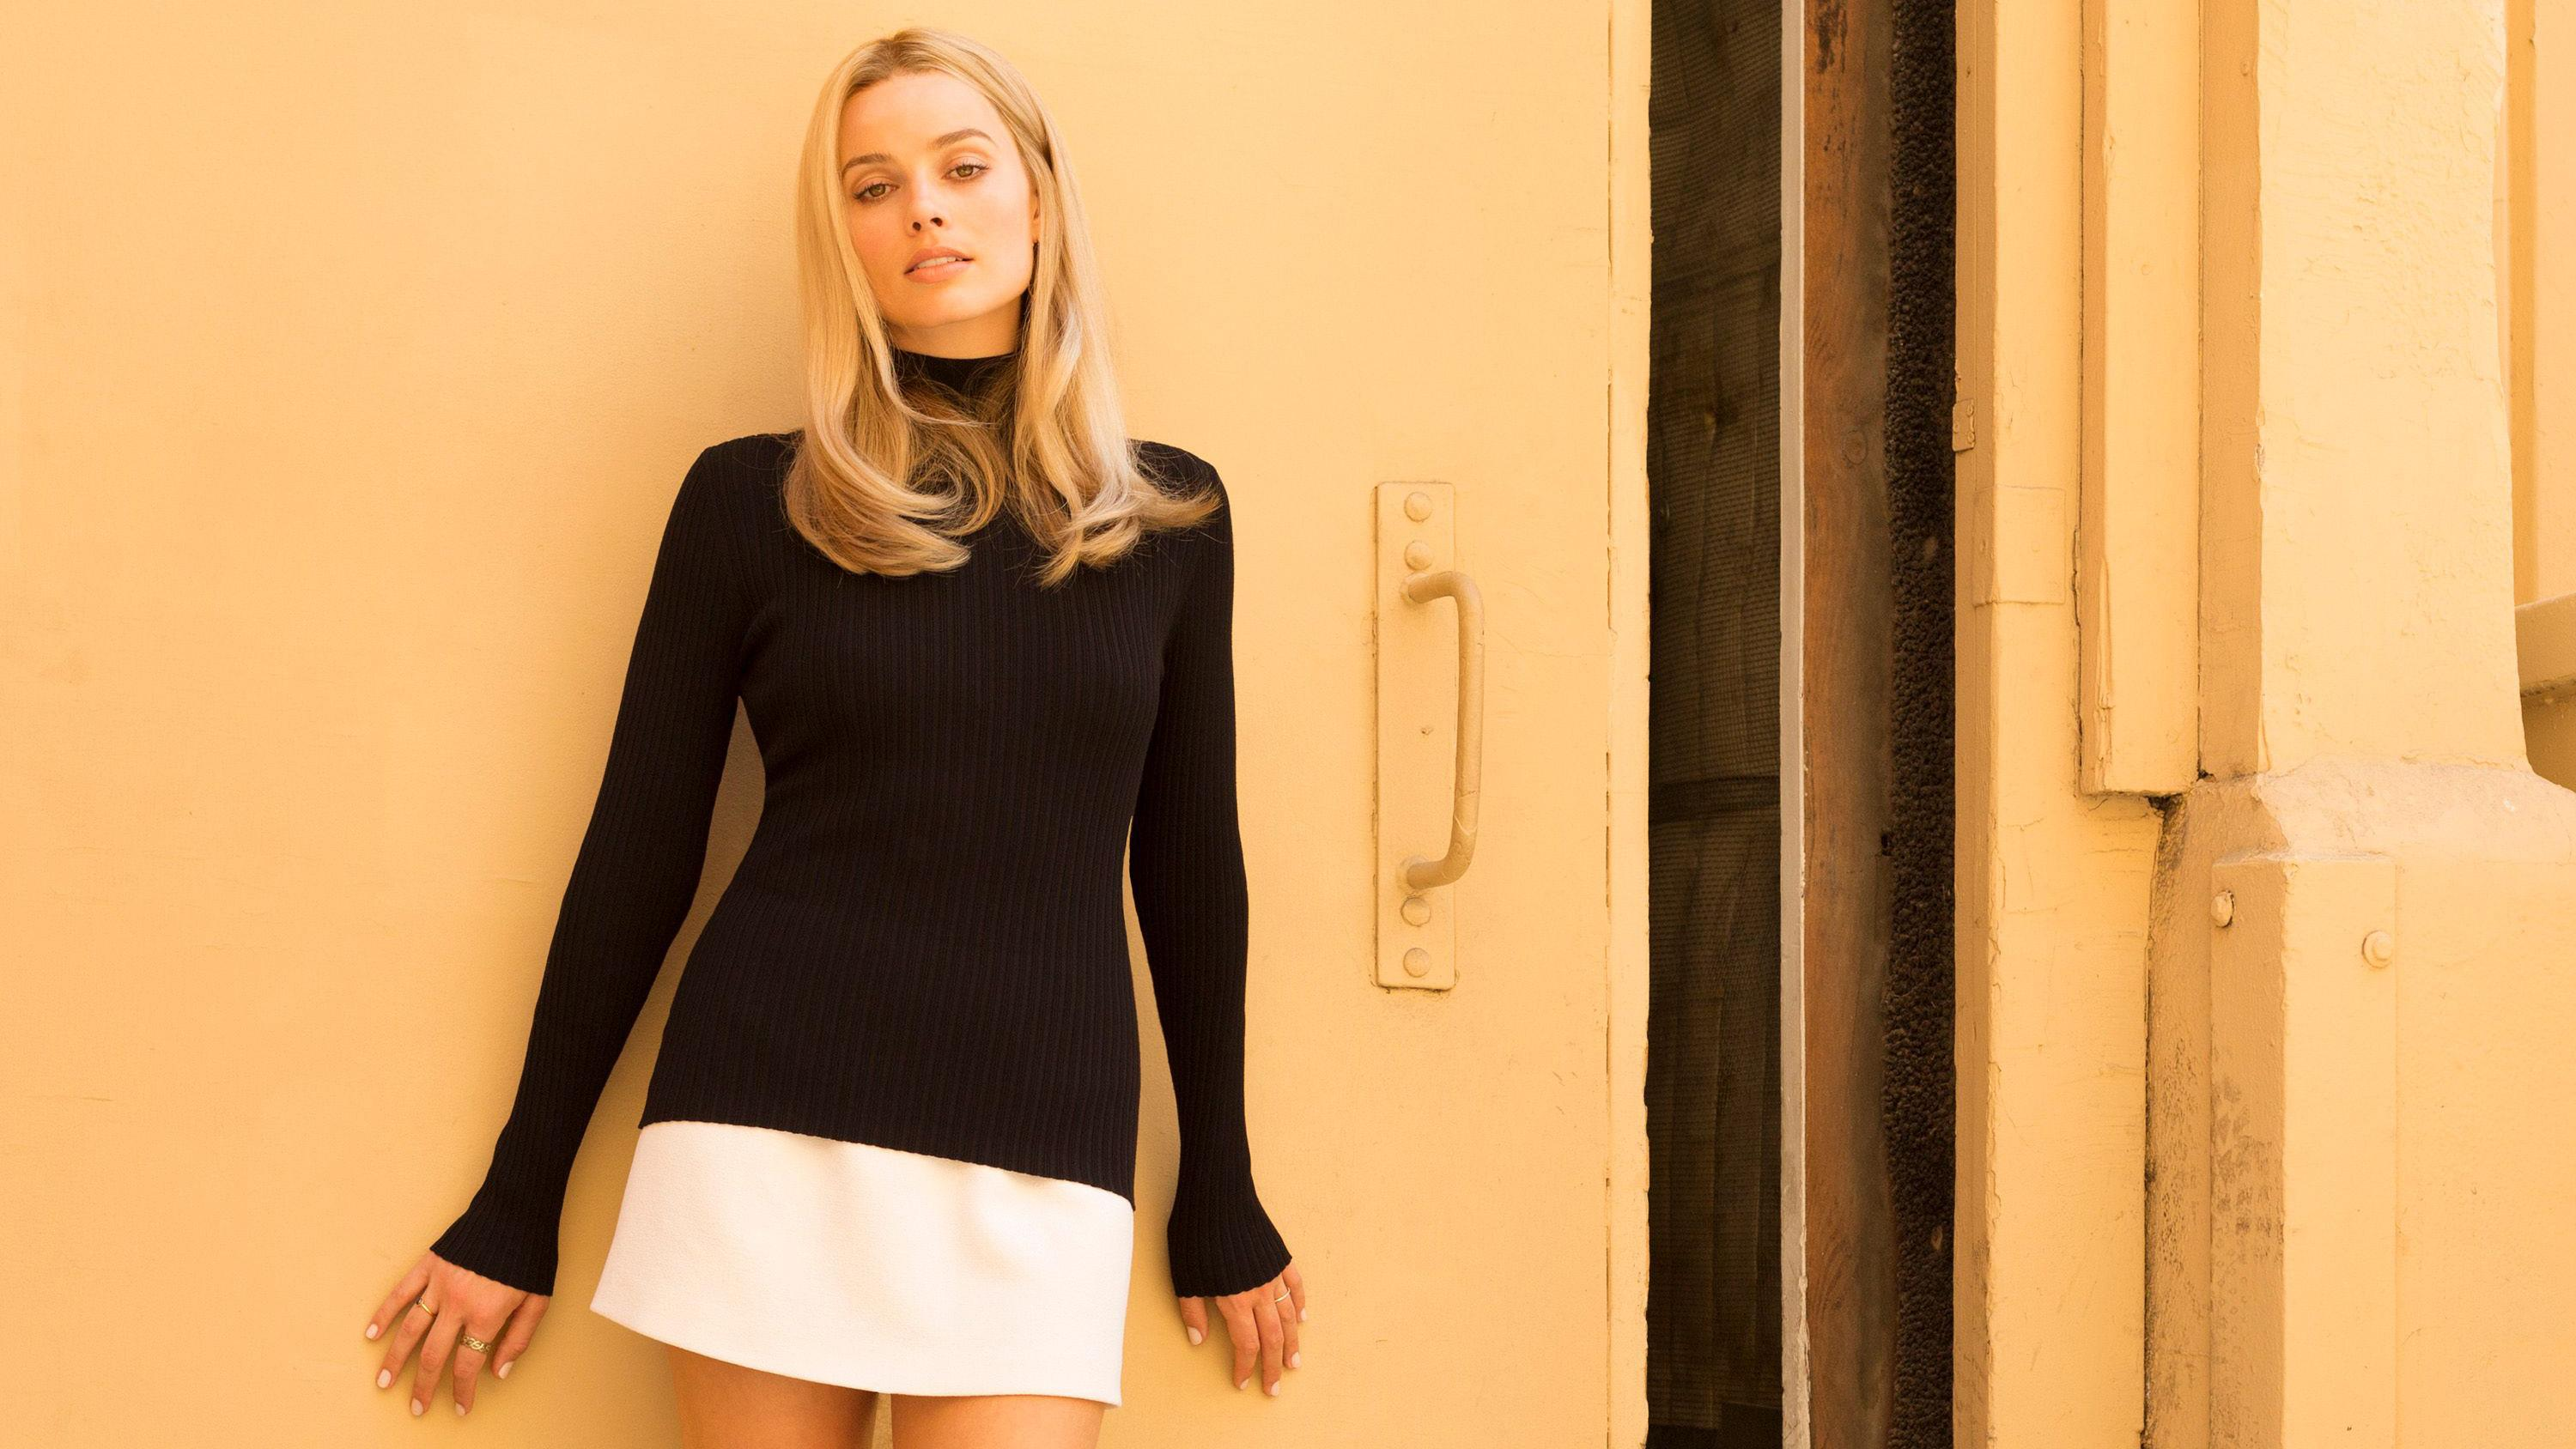 Margot Robbie As Sharon Tate In Once Upon A Time In Hollywood, HD